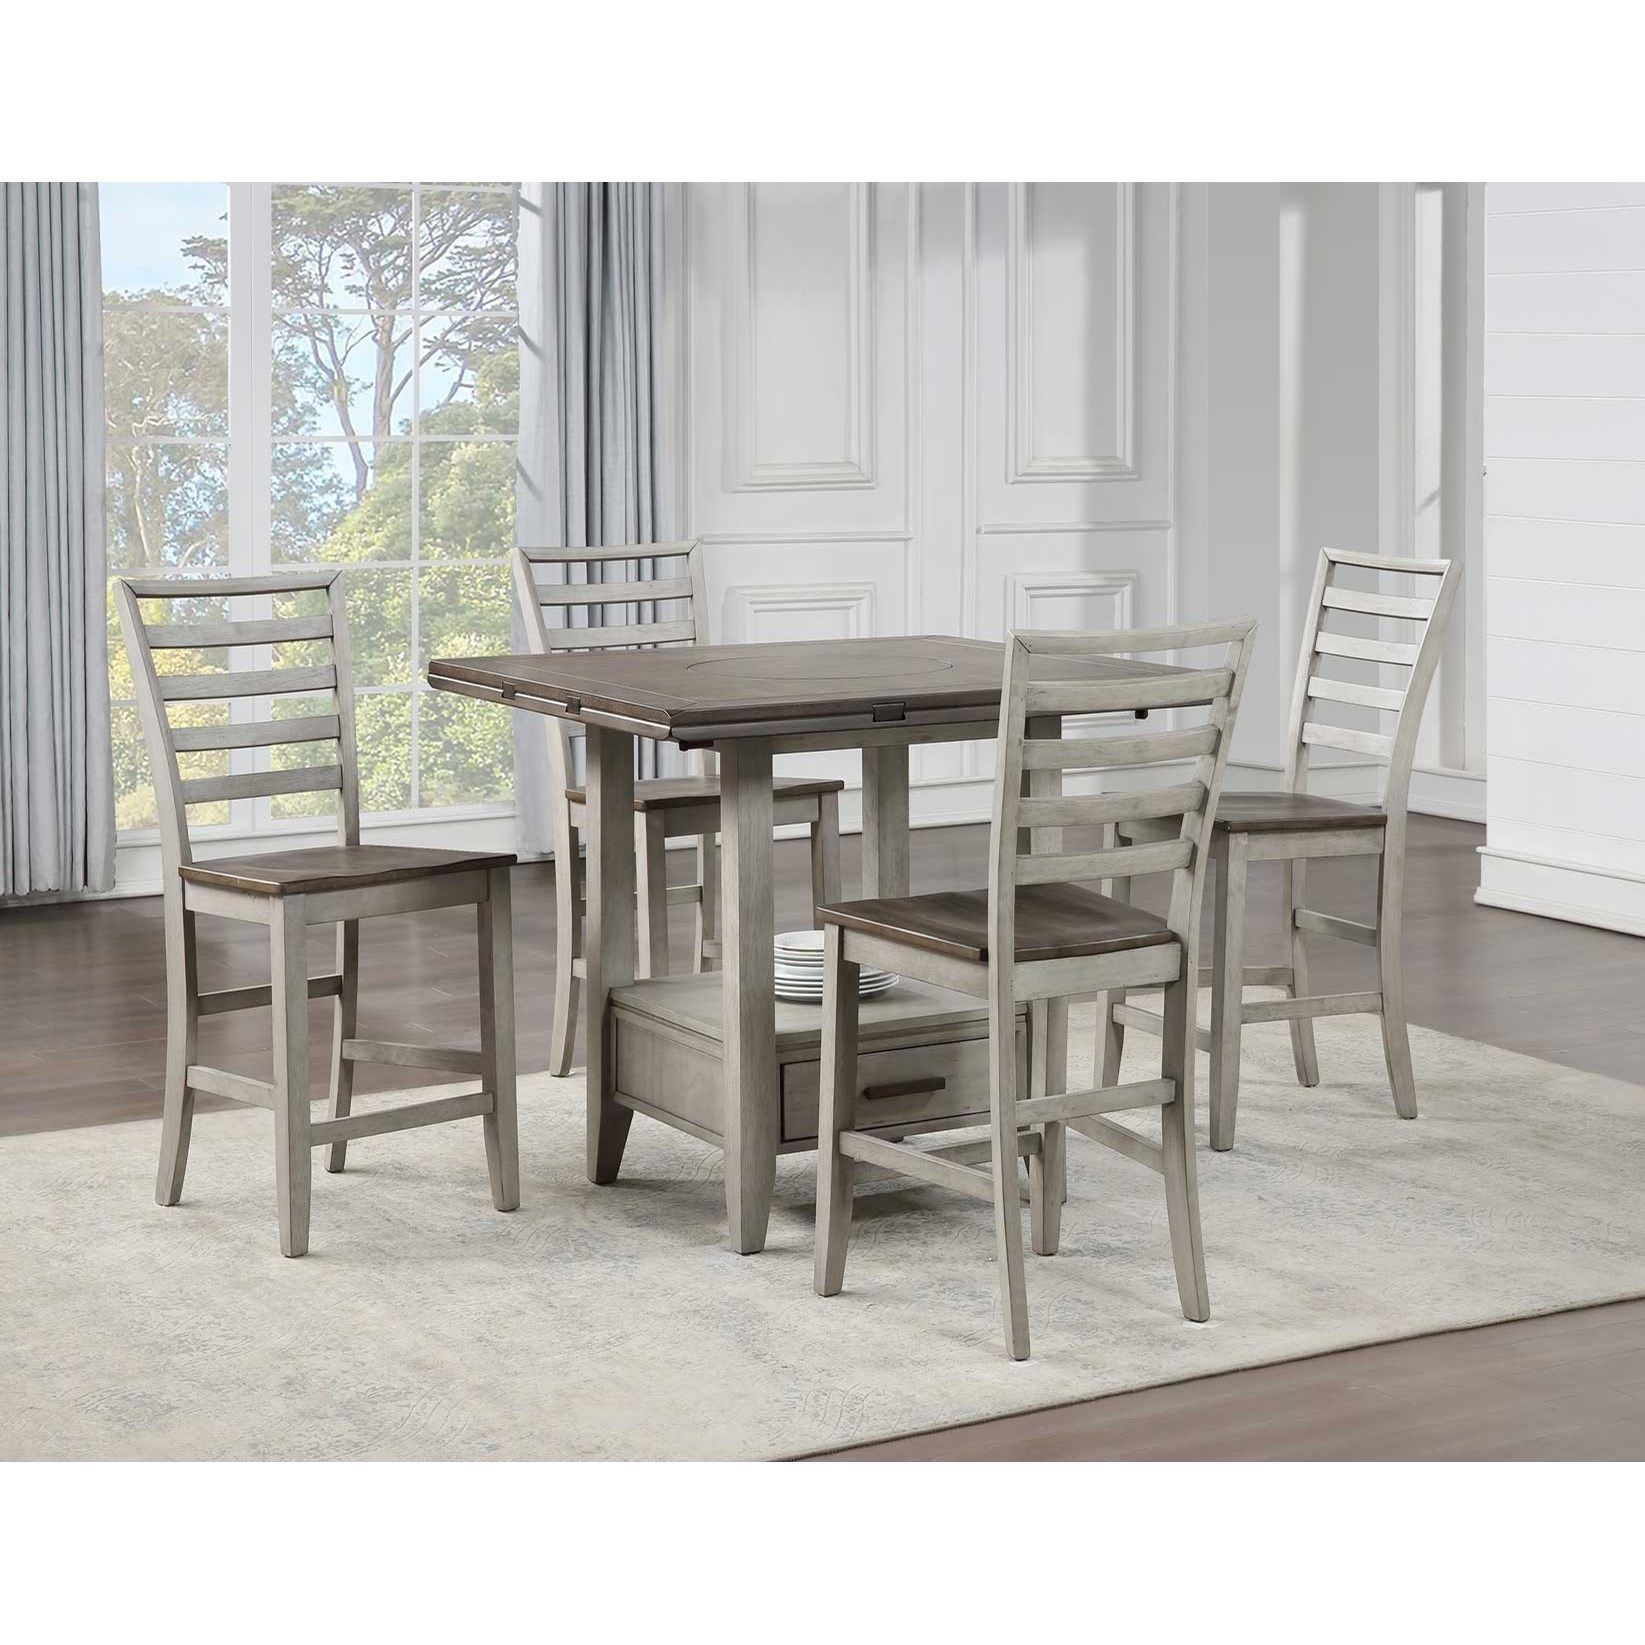 Abacus 5-Piece Counter Table and Chair Set by Steve Silver at Dunk & Bright Furniture